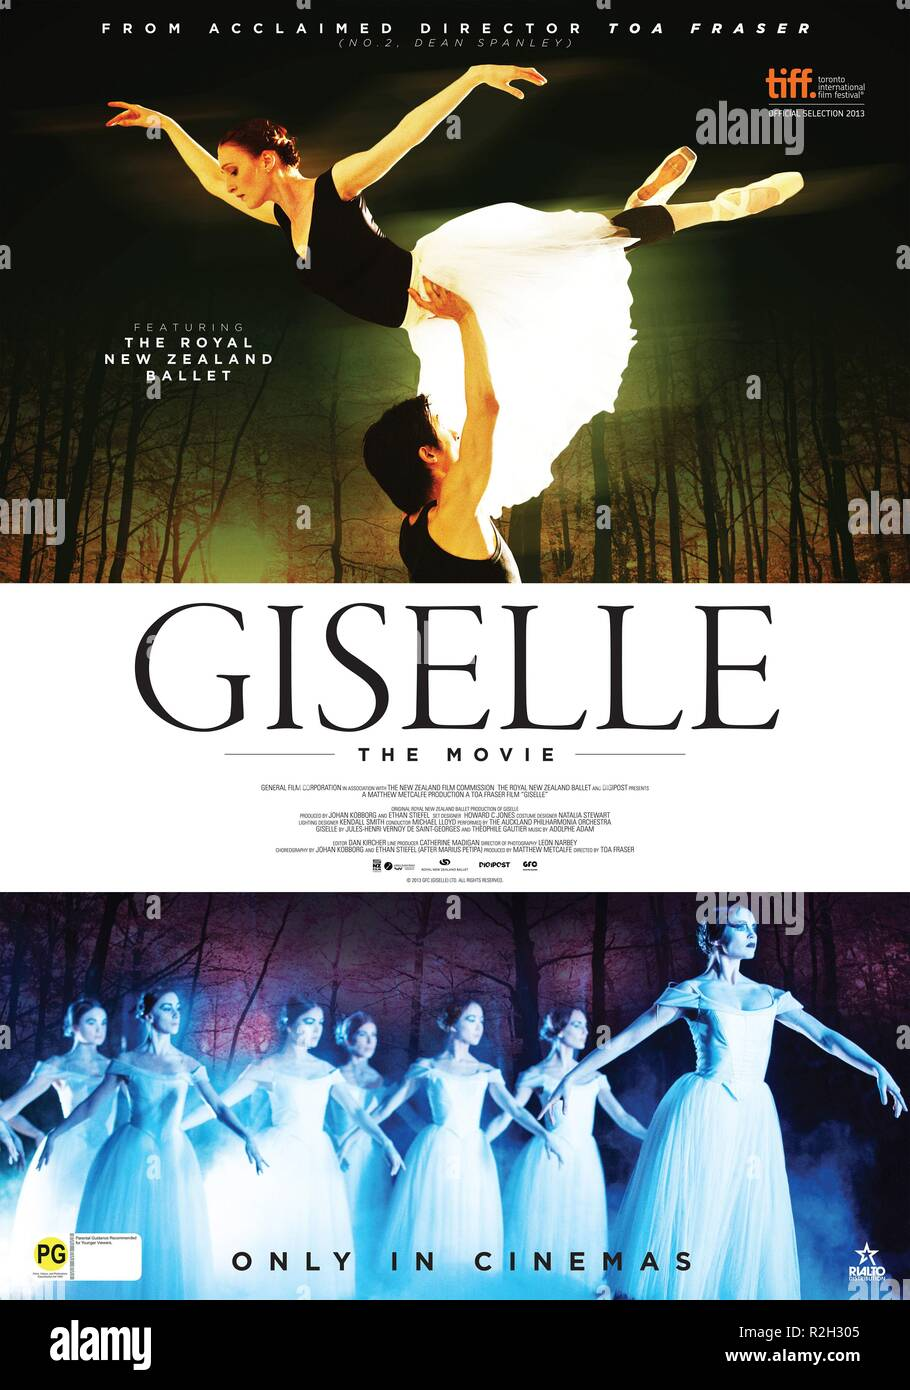 Giselle Year : 2013 New Zealand Director : Toa Fraser Movie poster (NZ) - Stock Image